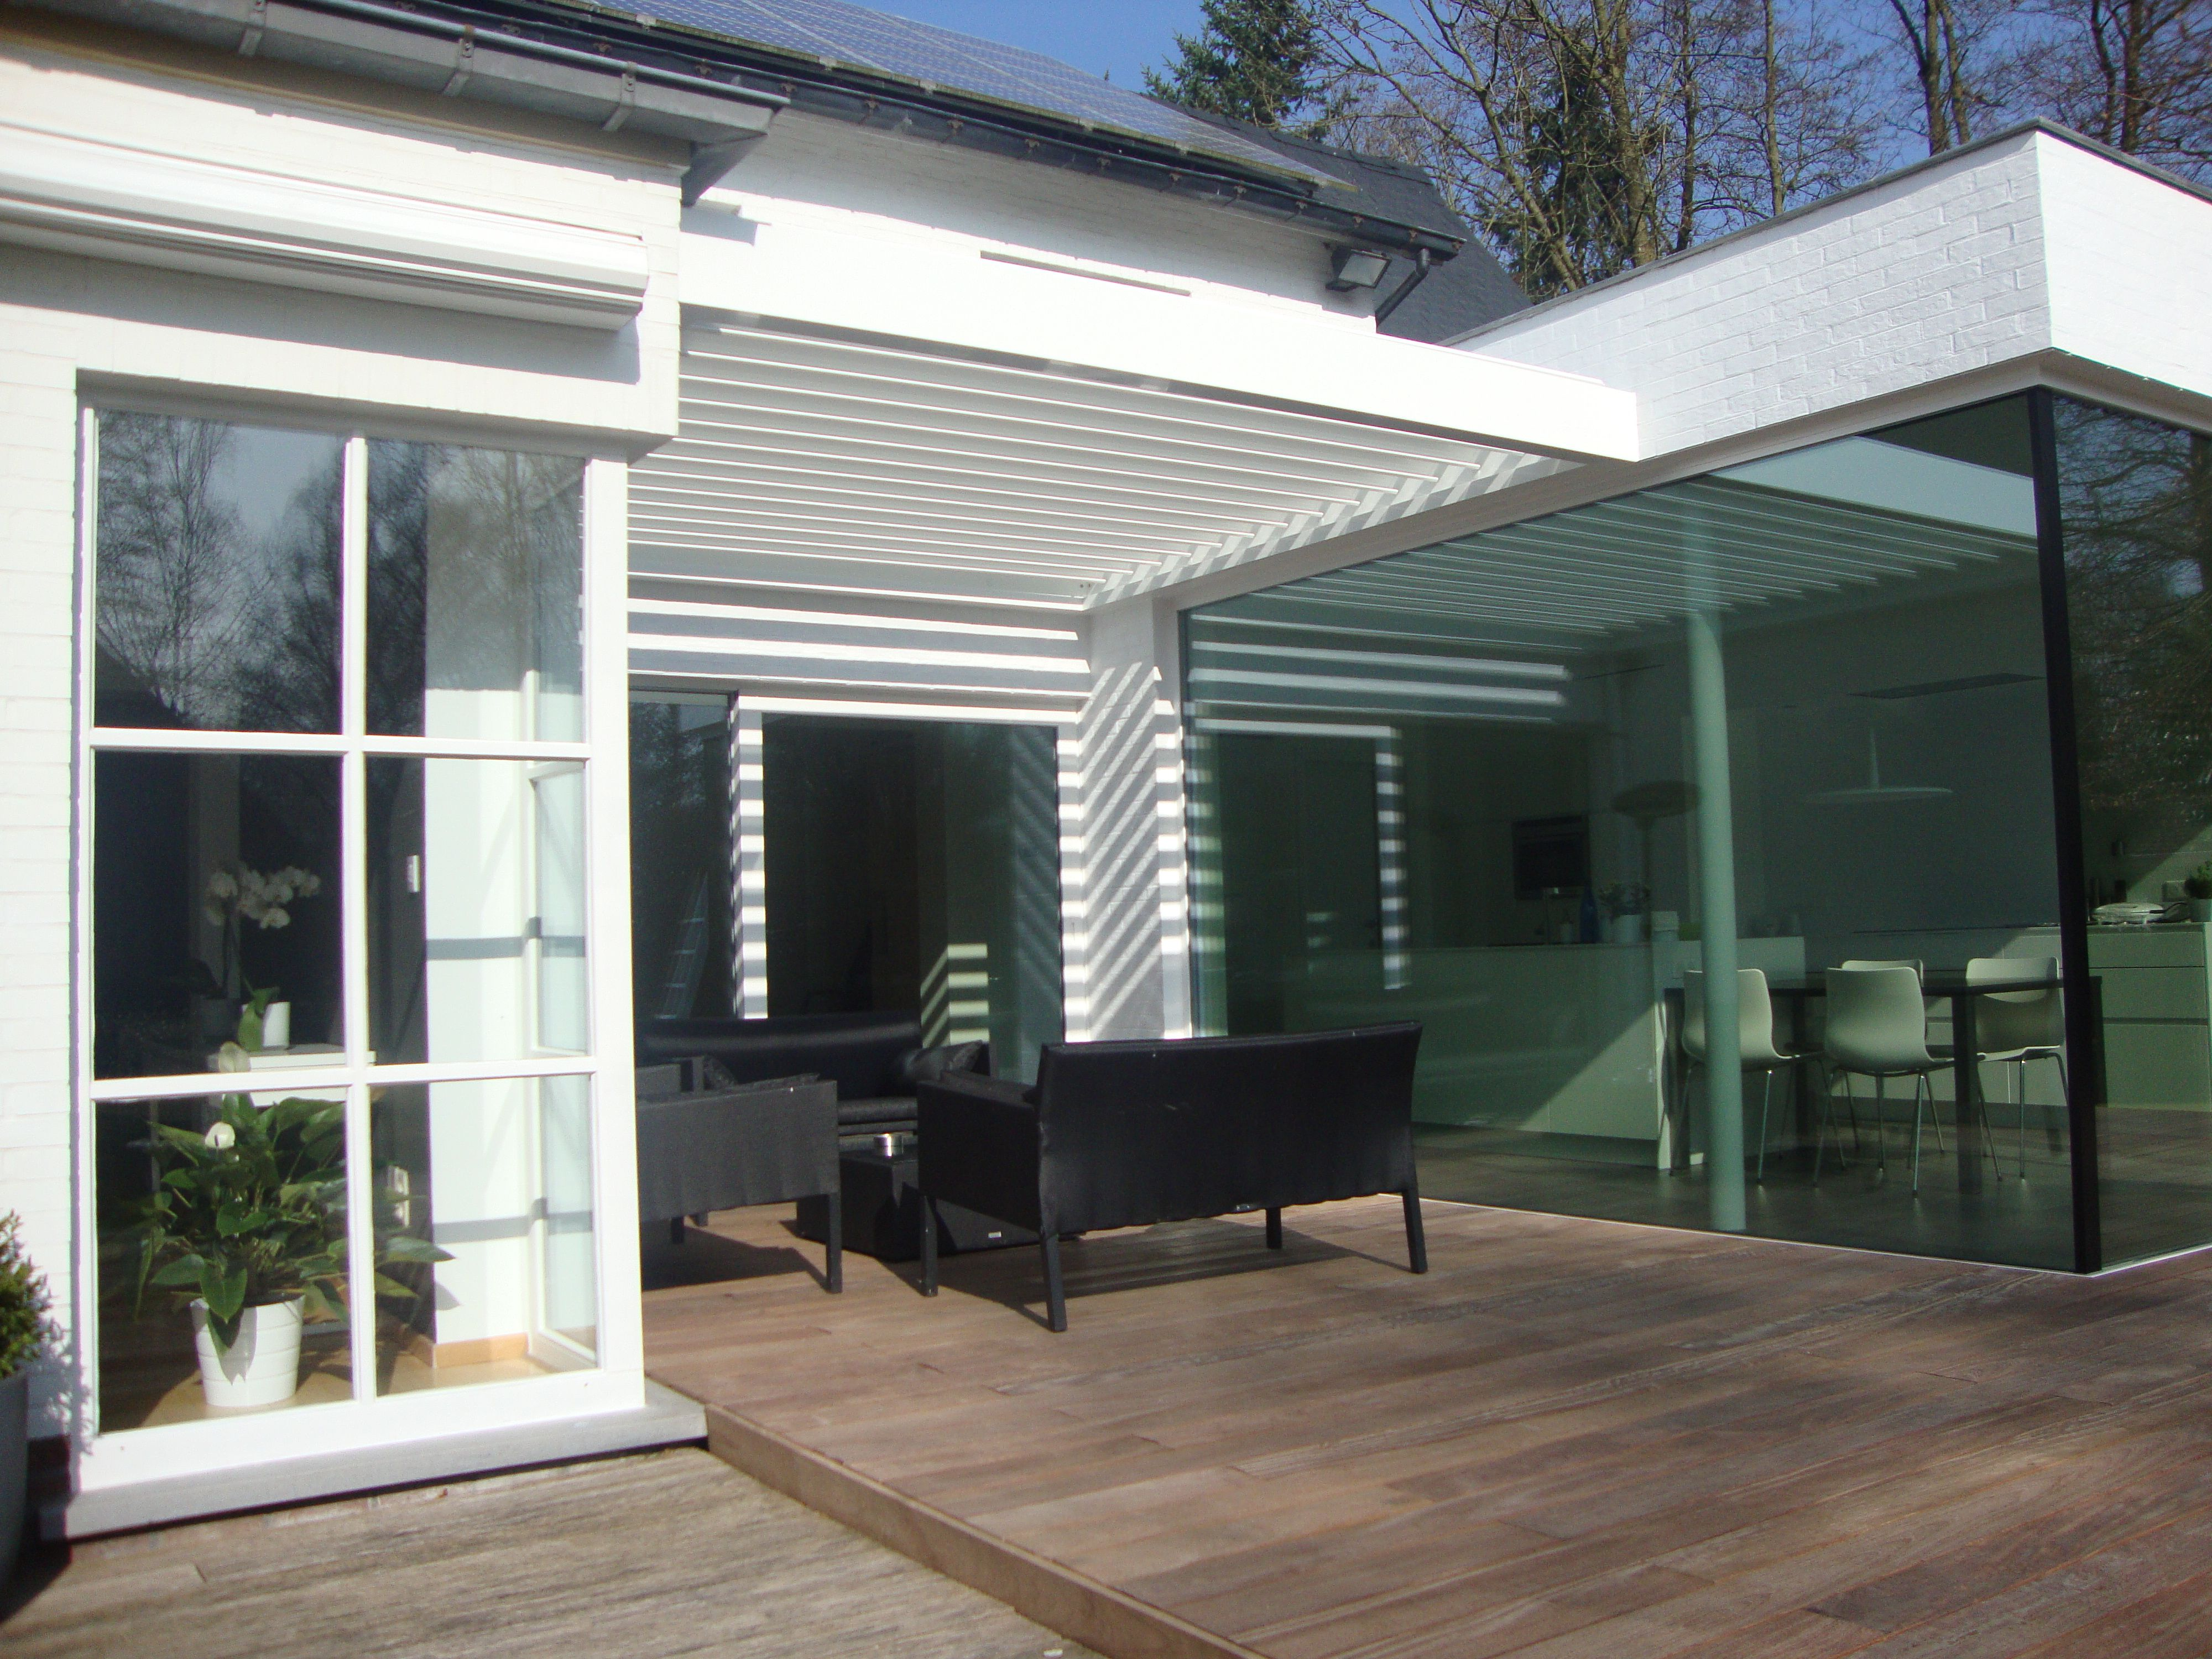 Algarve roof terrace cover renson outdoor louvered